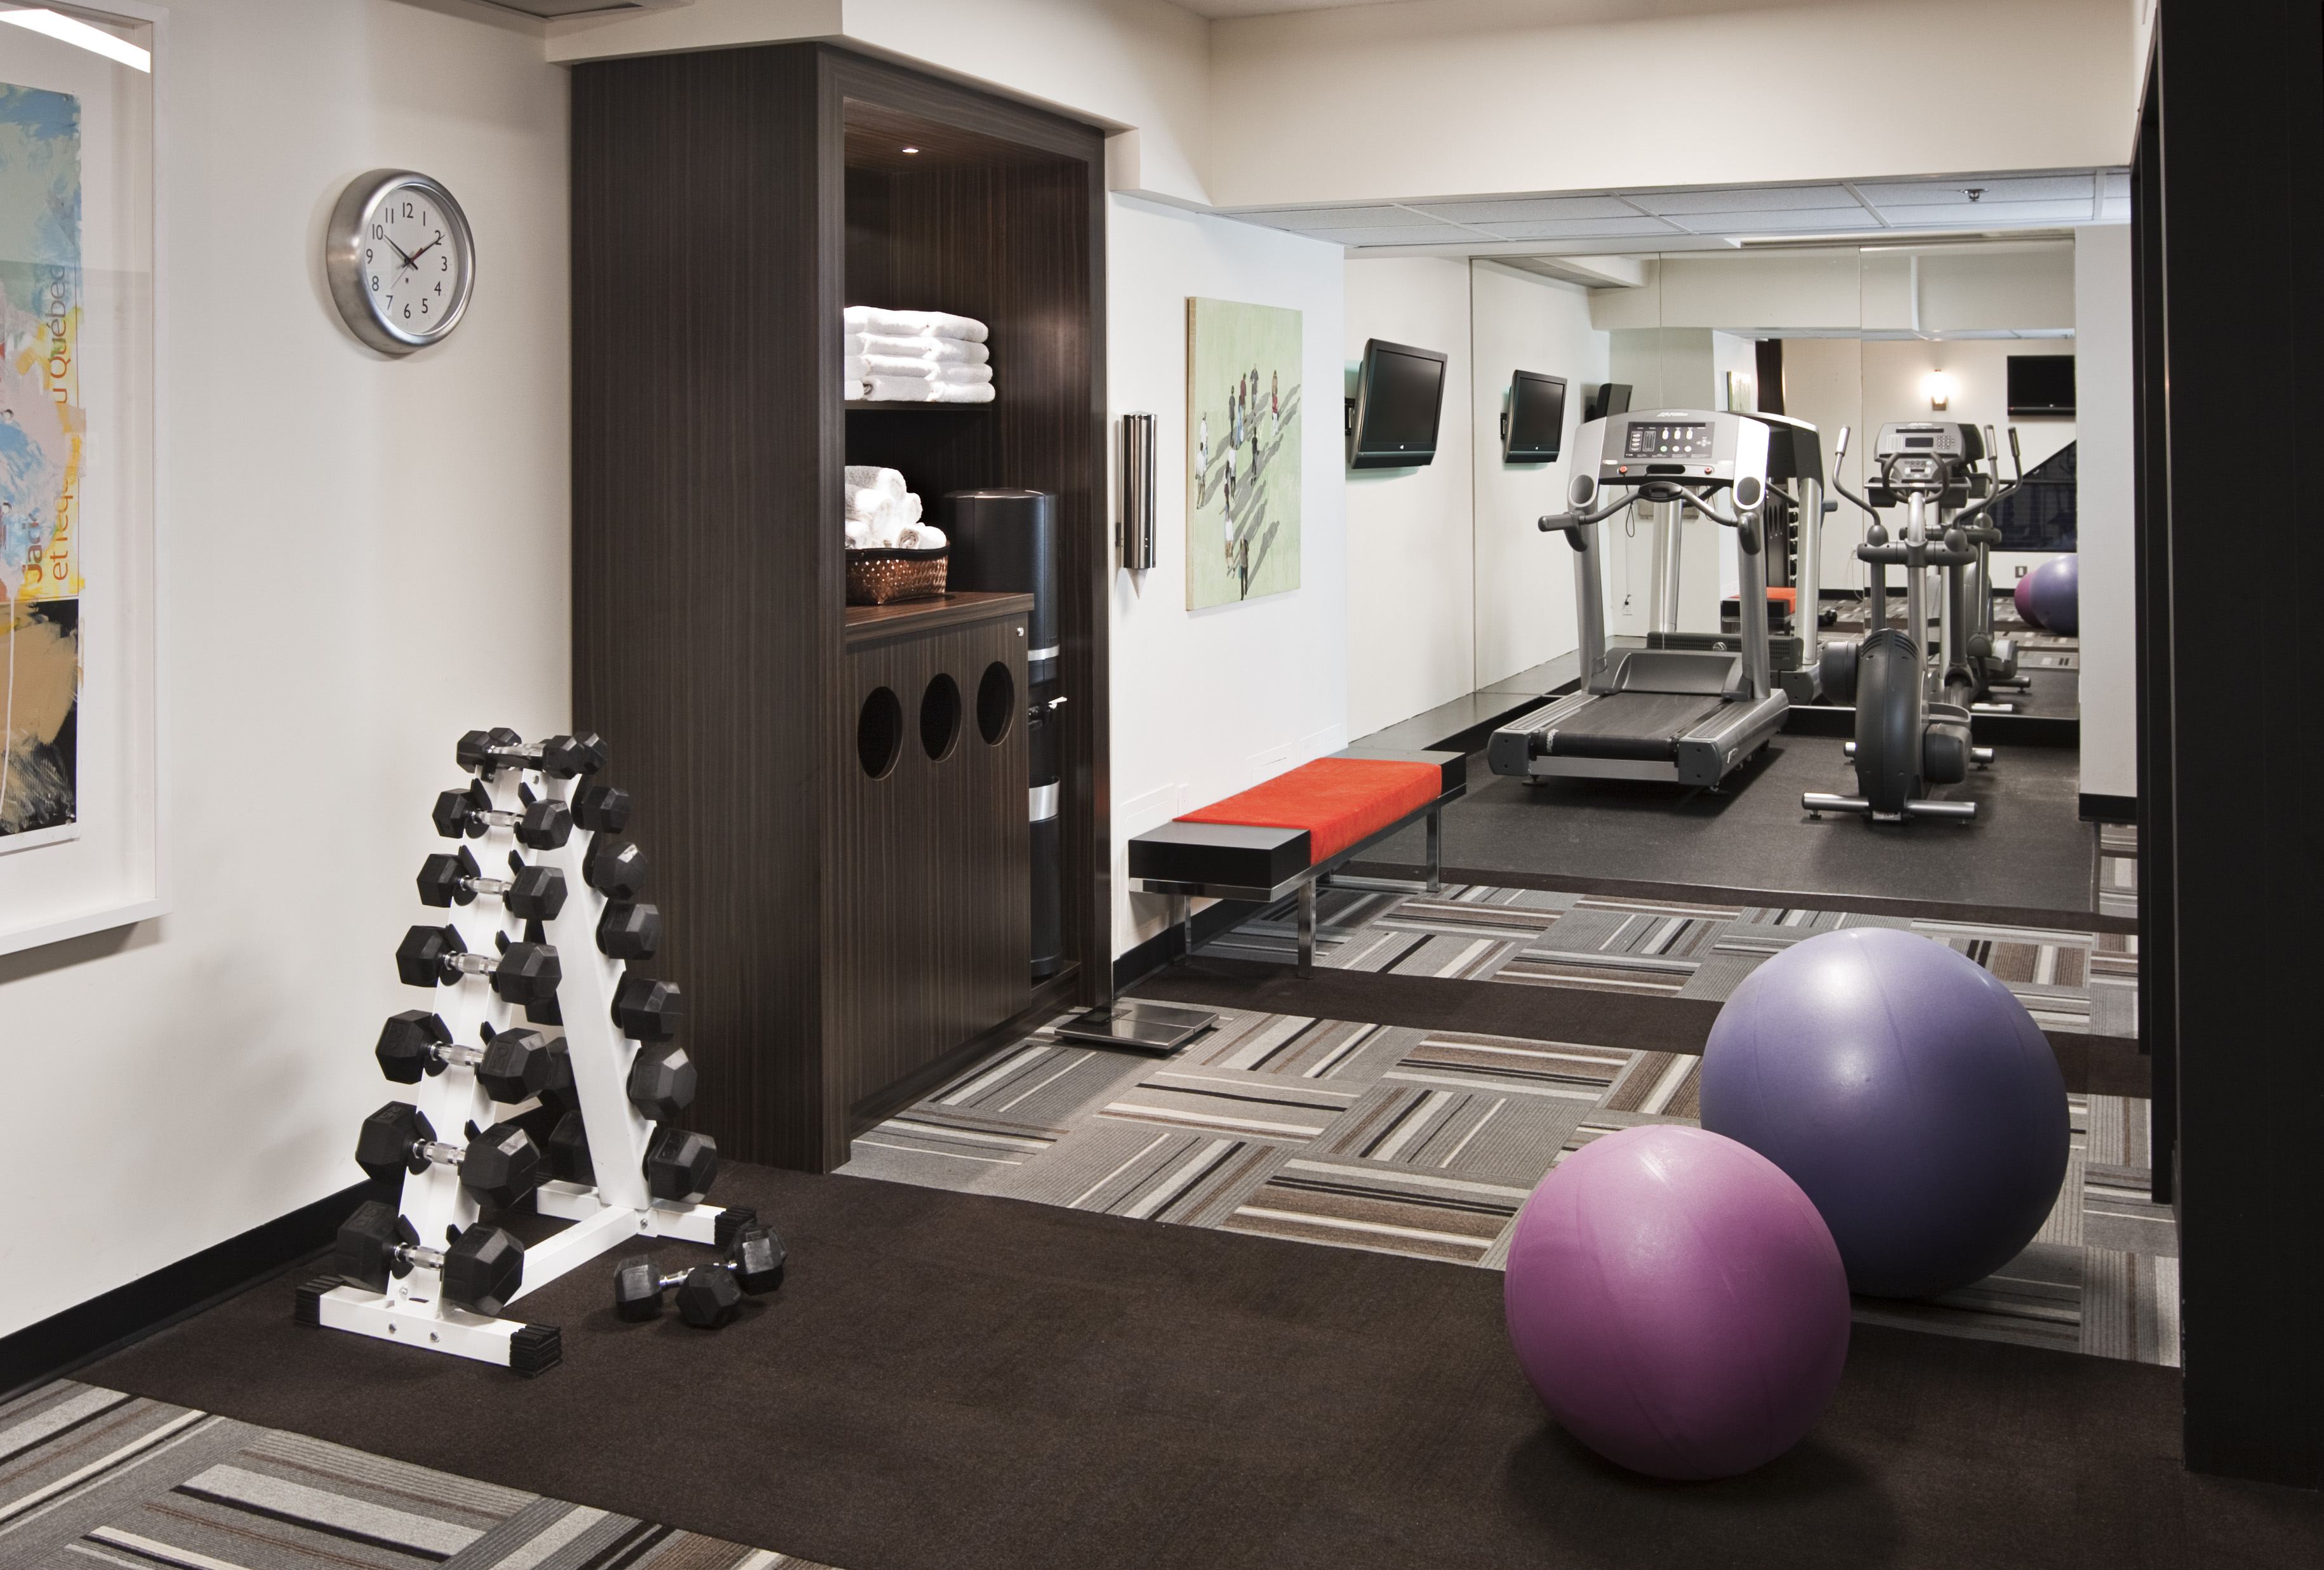 Towel Drop Fitness Center Pinterest Fitness Centers And Towels - Small home gyms